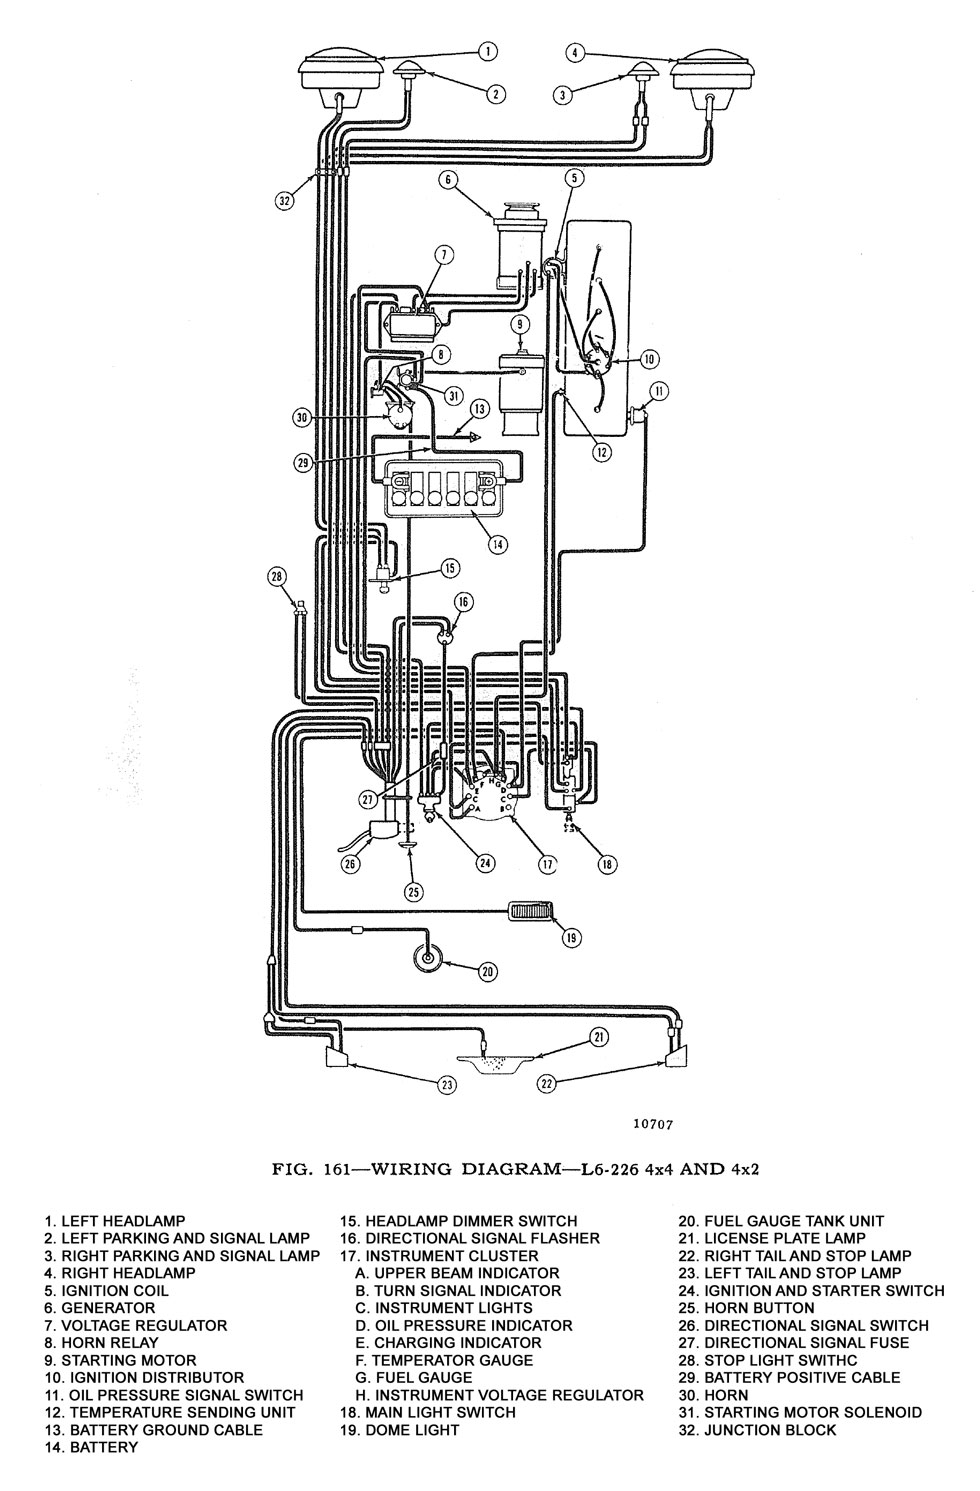 hight resolution of wiring diagram l6 226 4x4 and 4x2 warner winch a2000 wiring diagram 4x4 wiring diagram